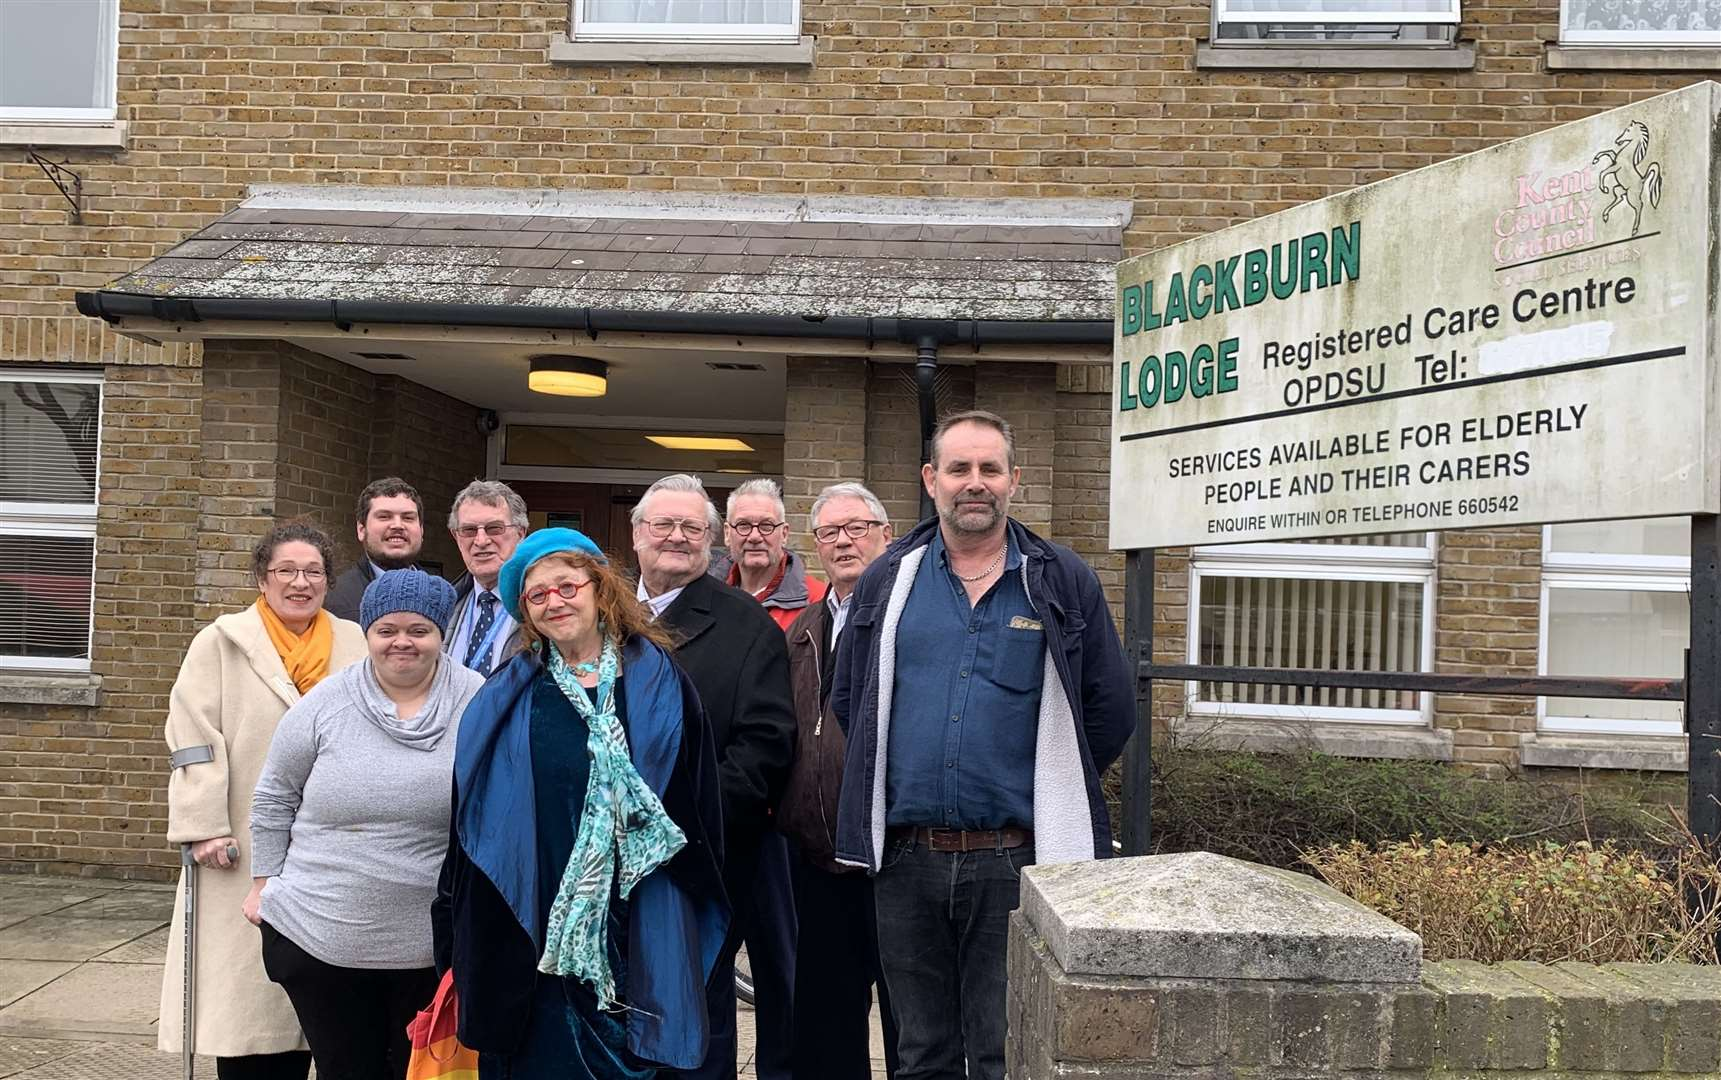 Members of the pressure group outside Blackburn Lodge in Broadway, Sheerness